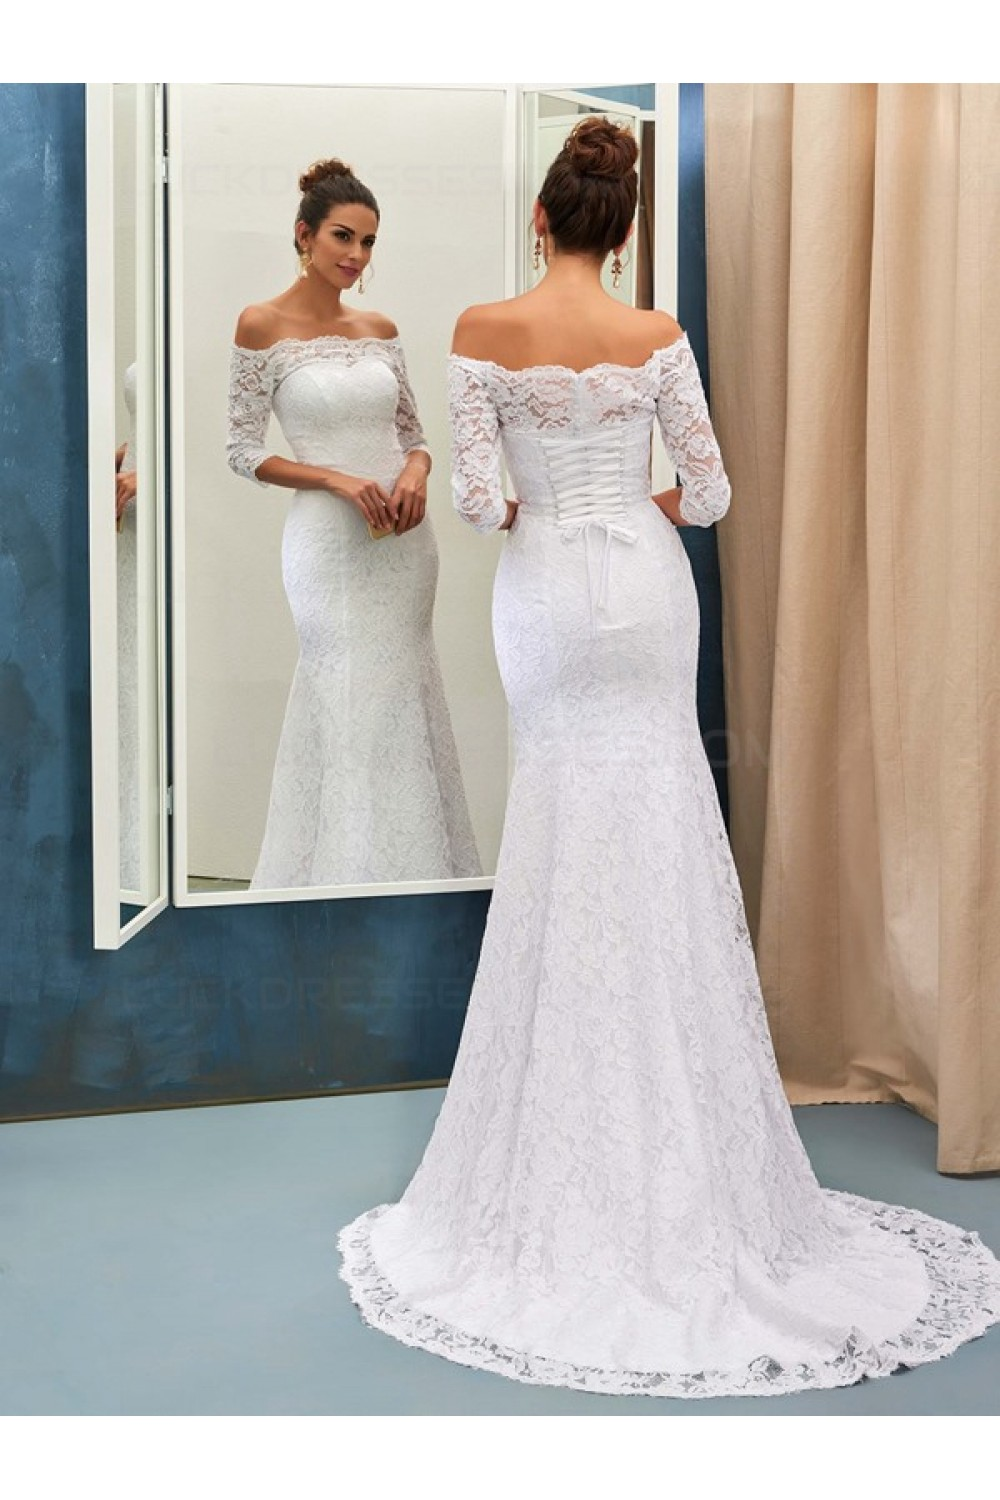 Trumpet/Mermaid Off-the-shoulder 3/4 Length Sleeve Lace Wedding